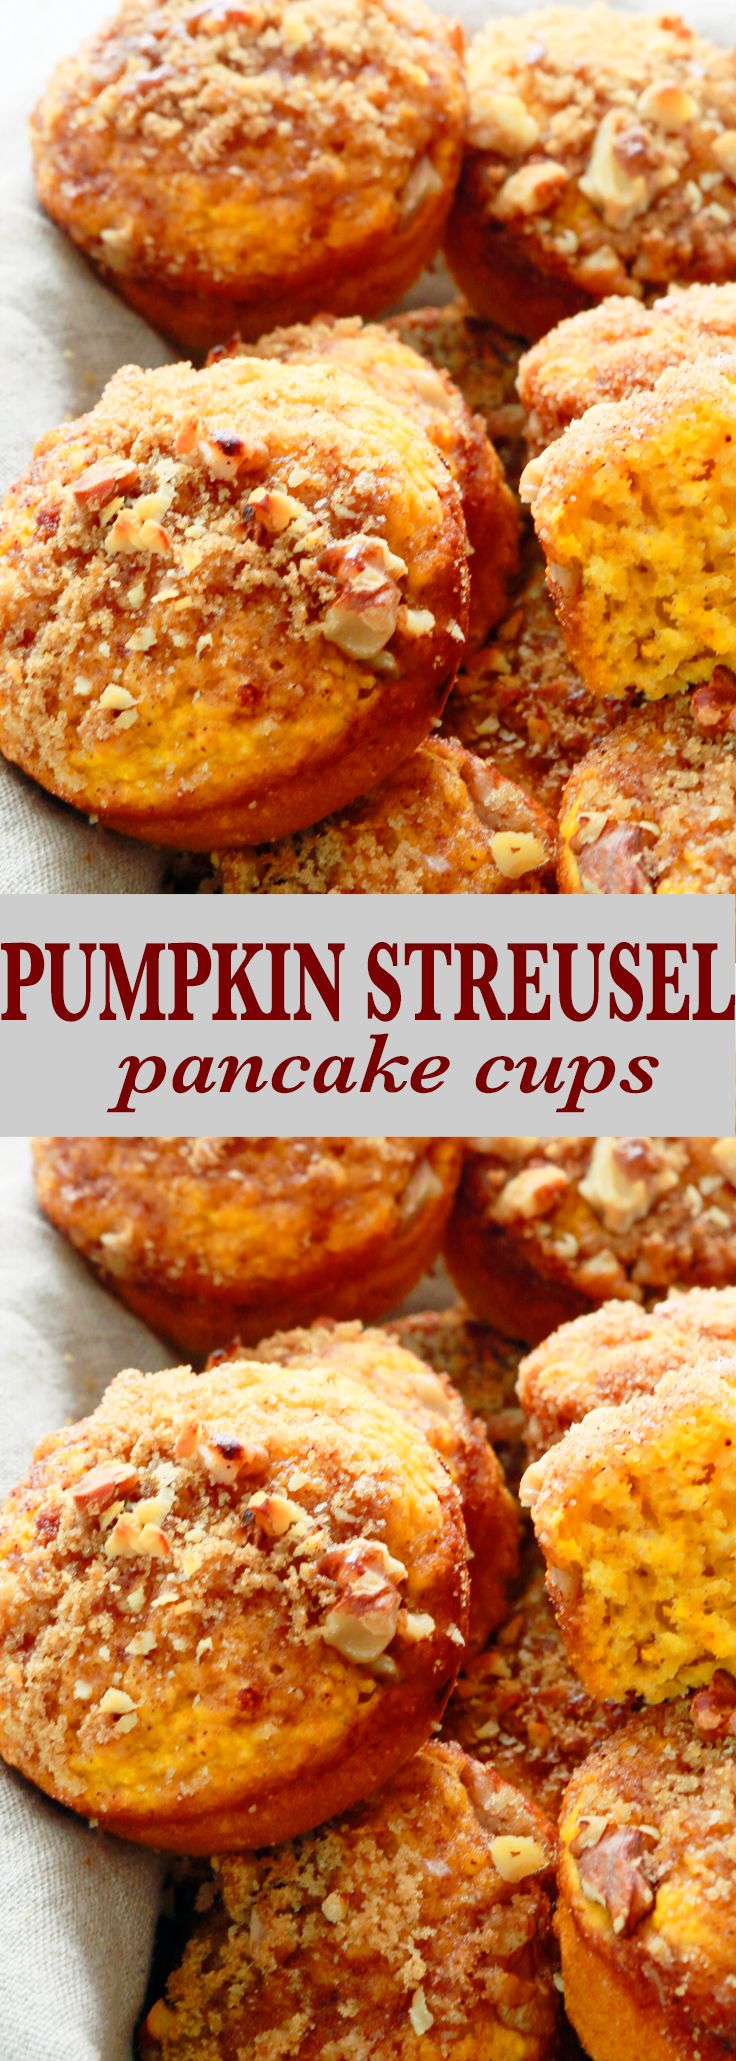 pumpkin pancake | pumpkin recipes | fall breakfast | pancake cups | on the go breakfast | on the go kids | kids breakfast recipes | baked pancakes | easy breakfast recipes | kid friendly breakfast